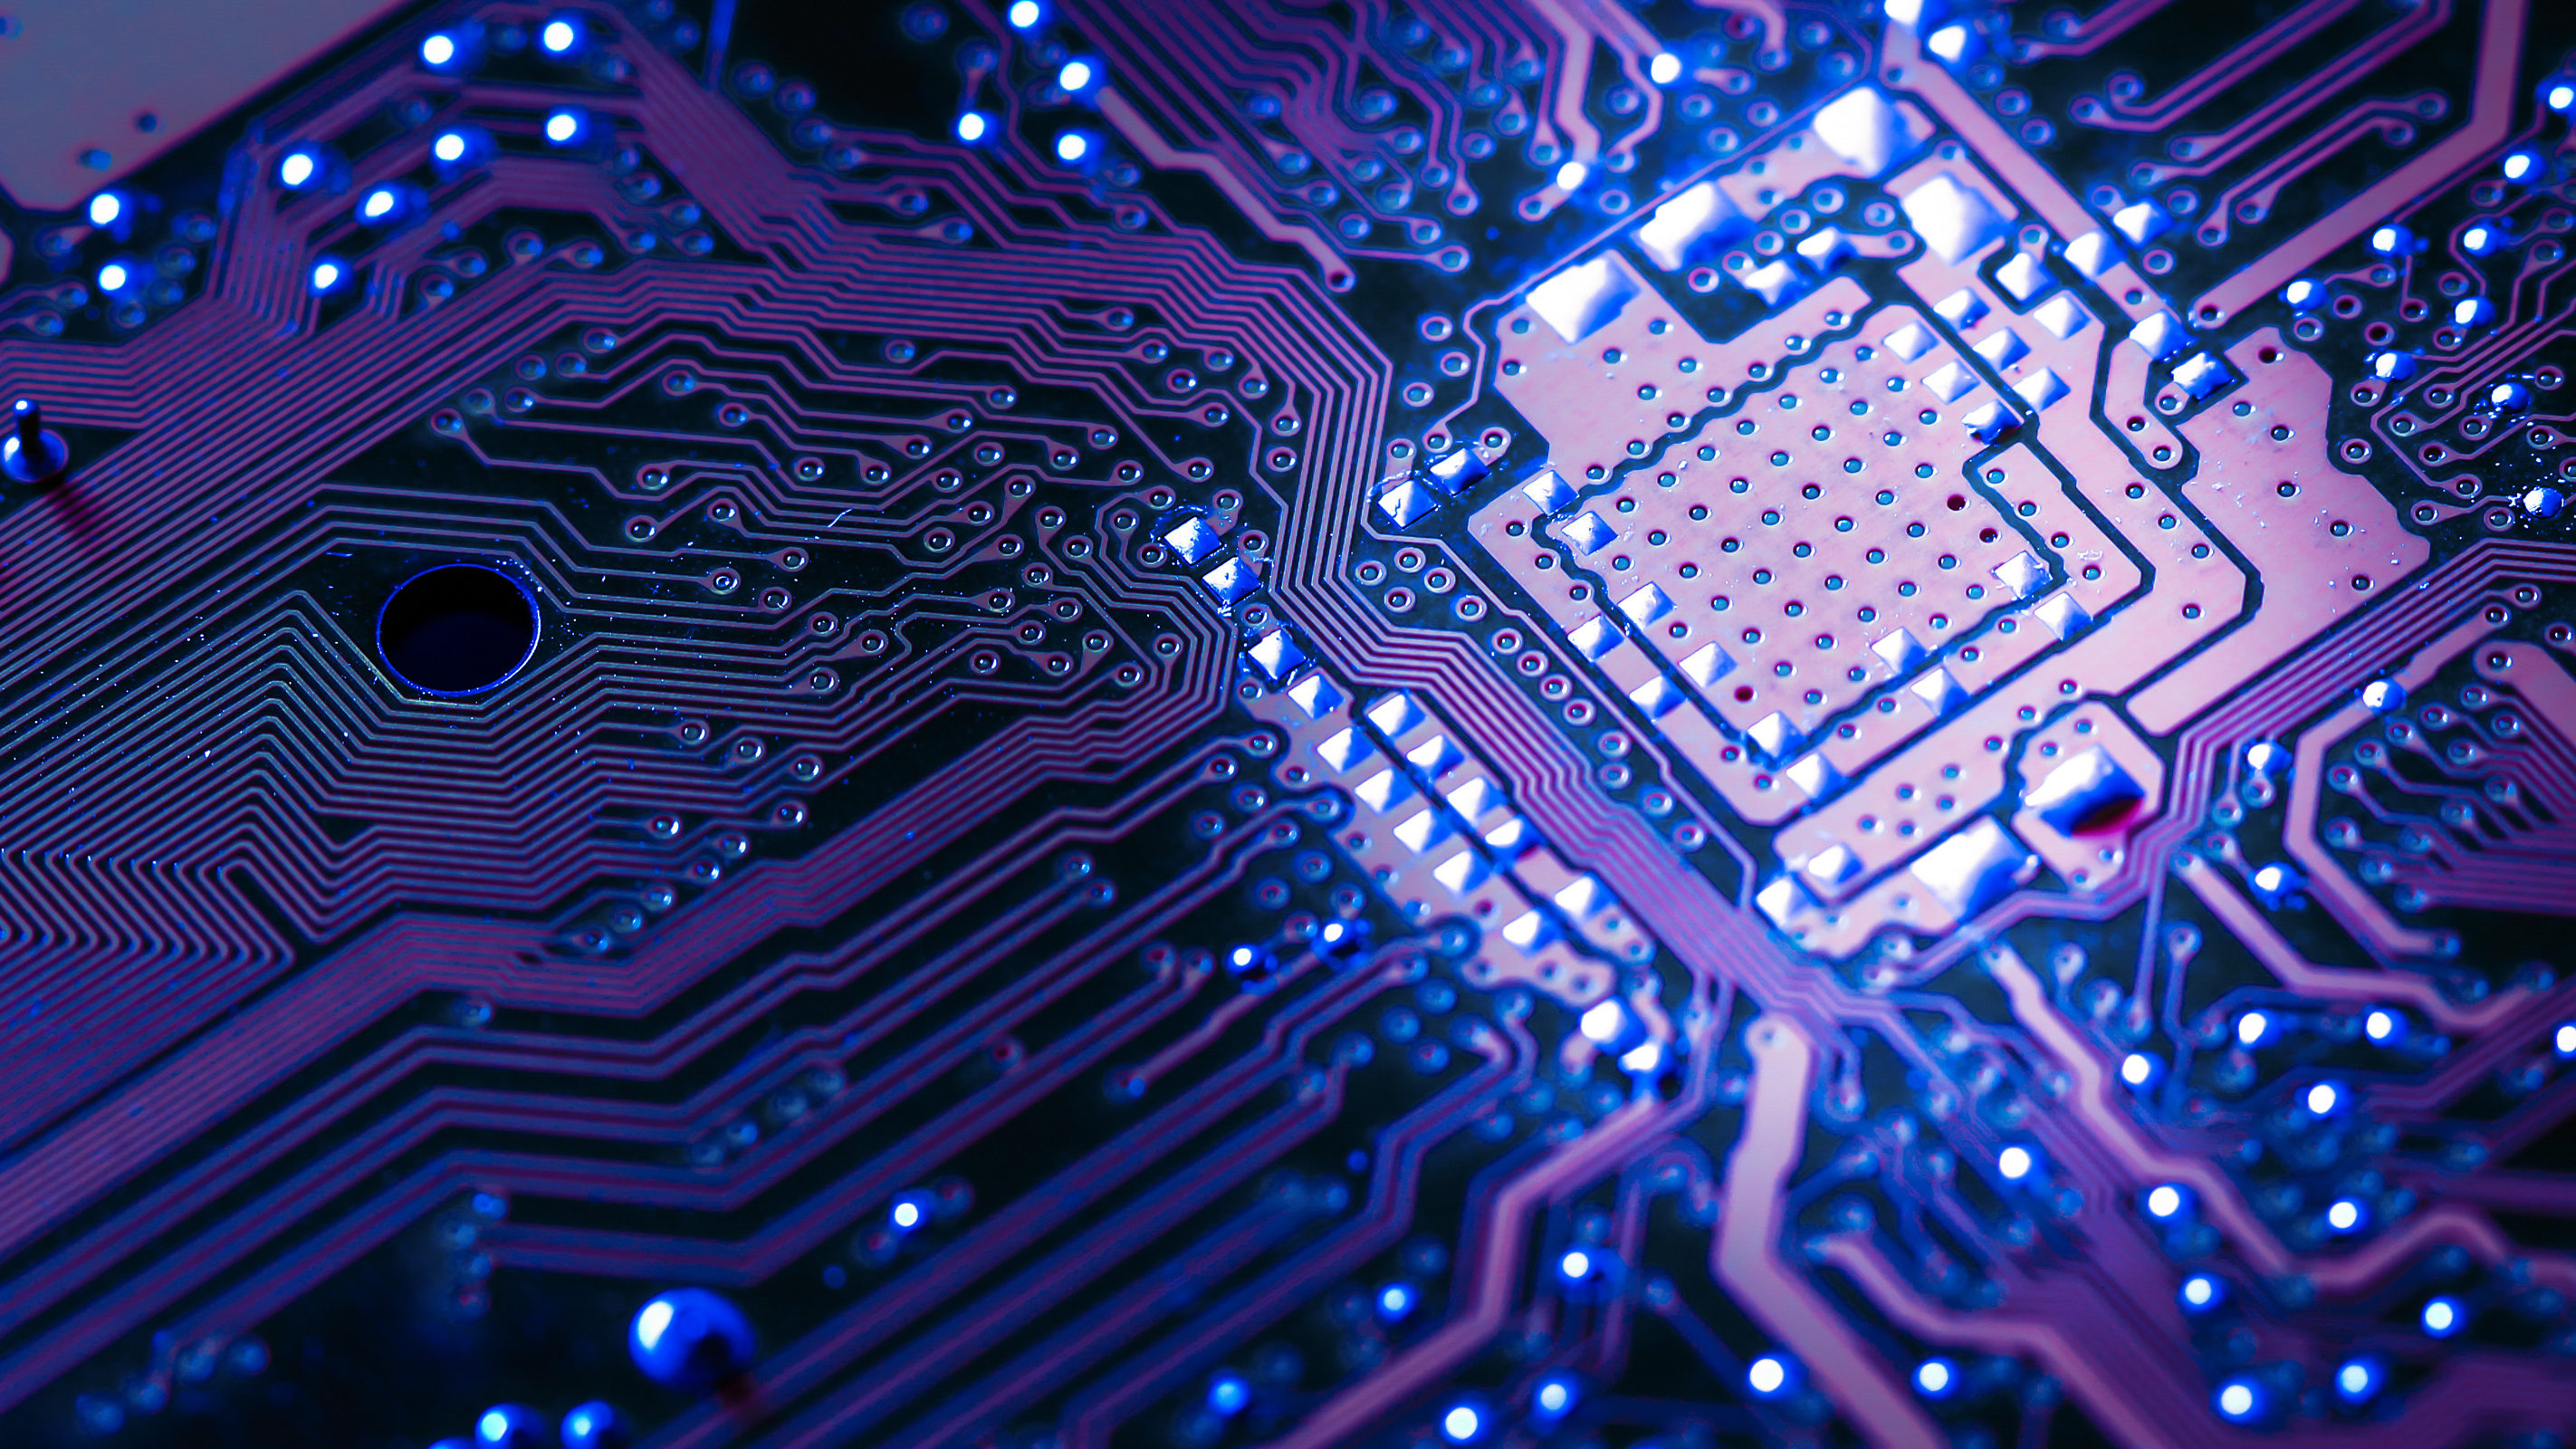 A close up of a computer chip